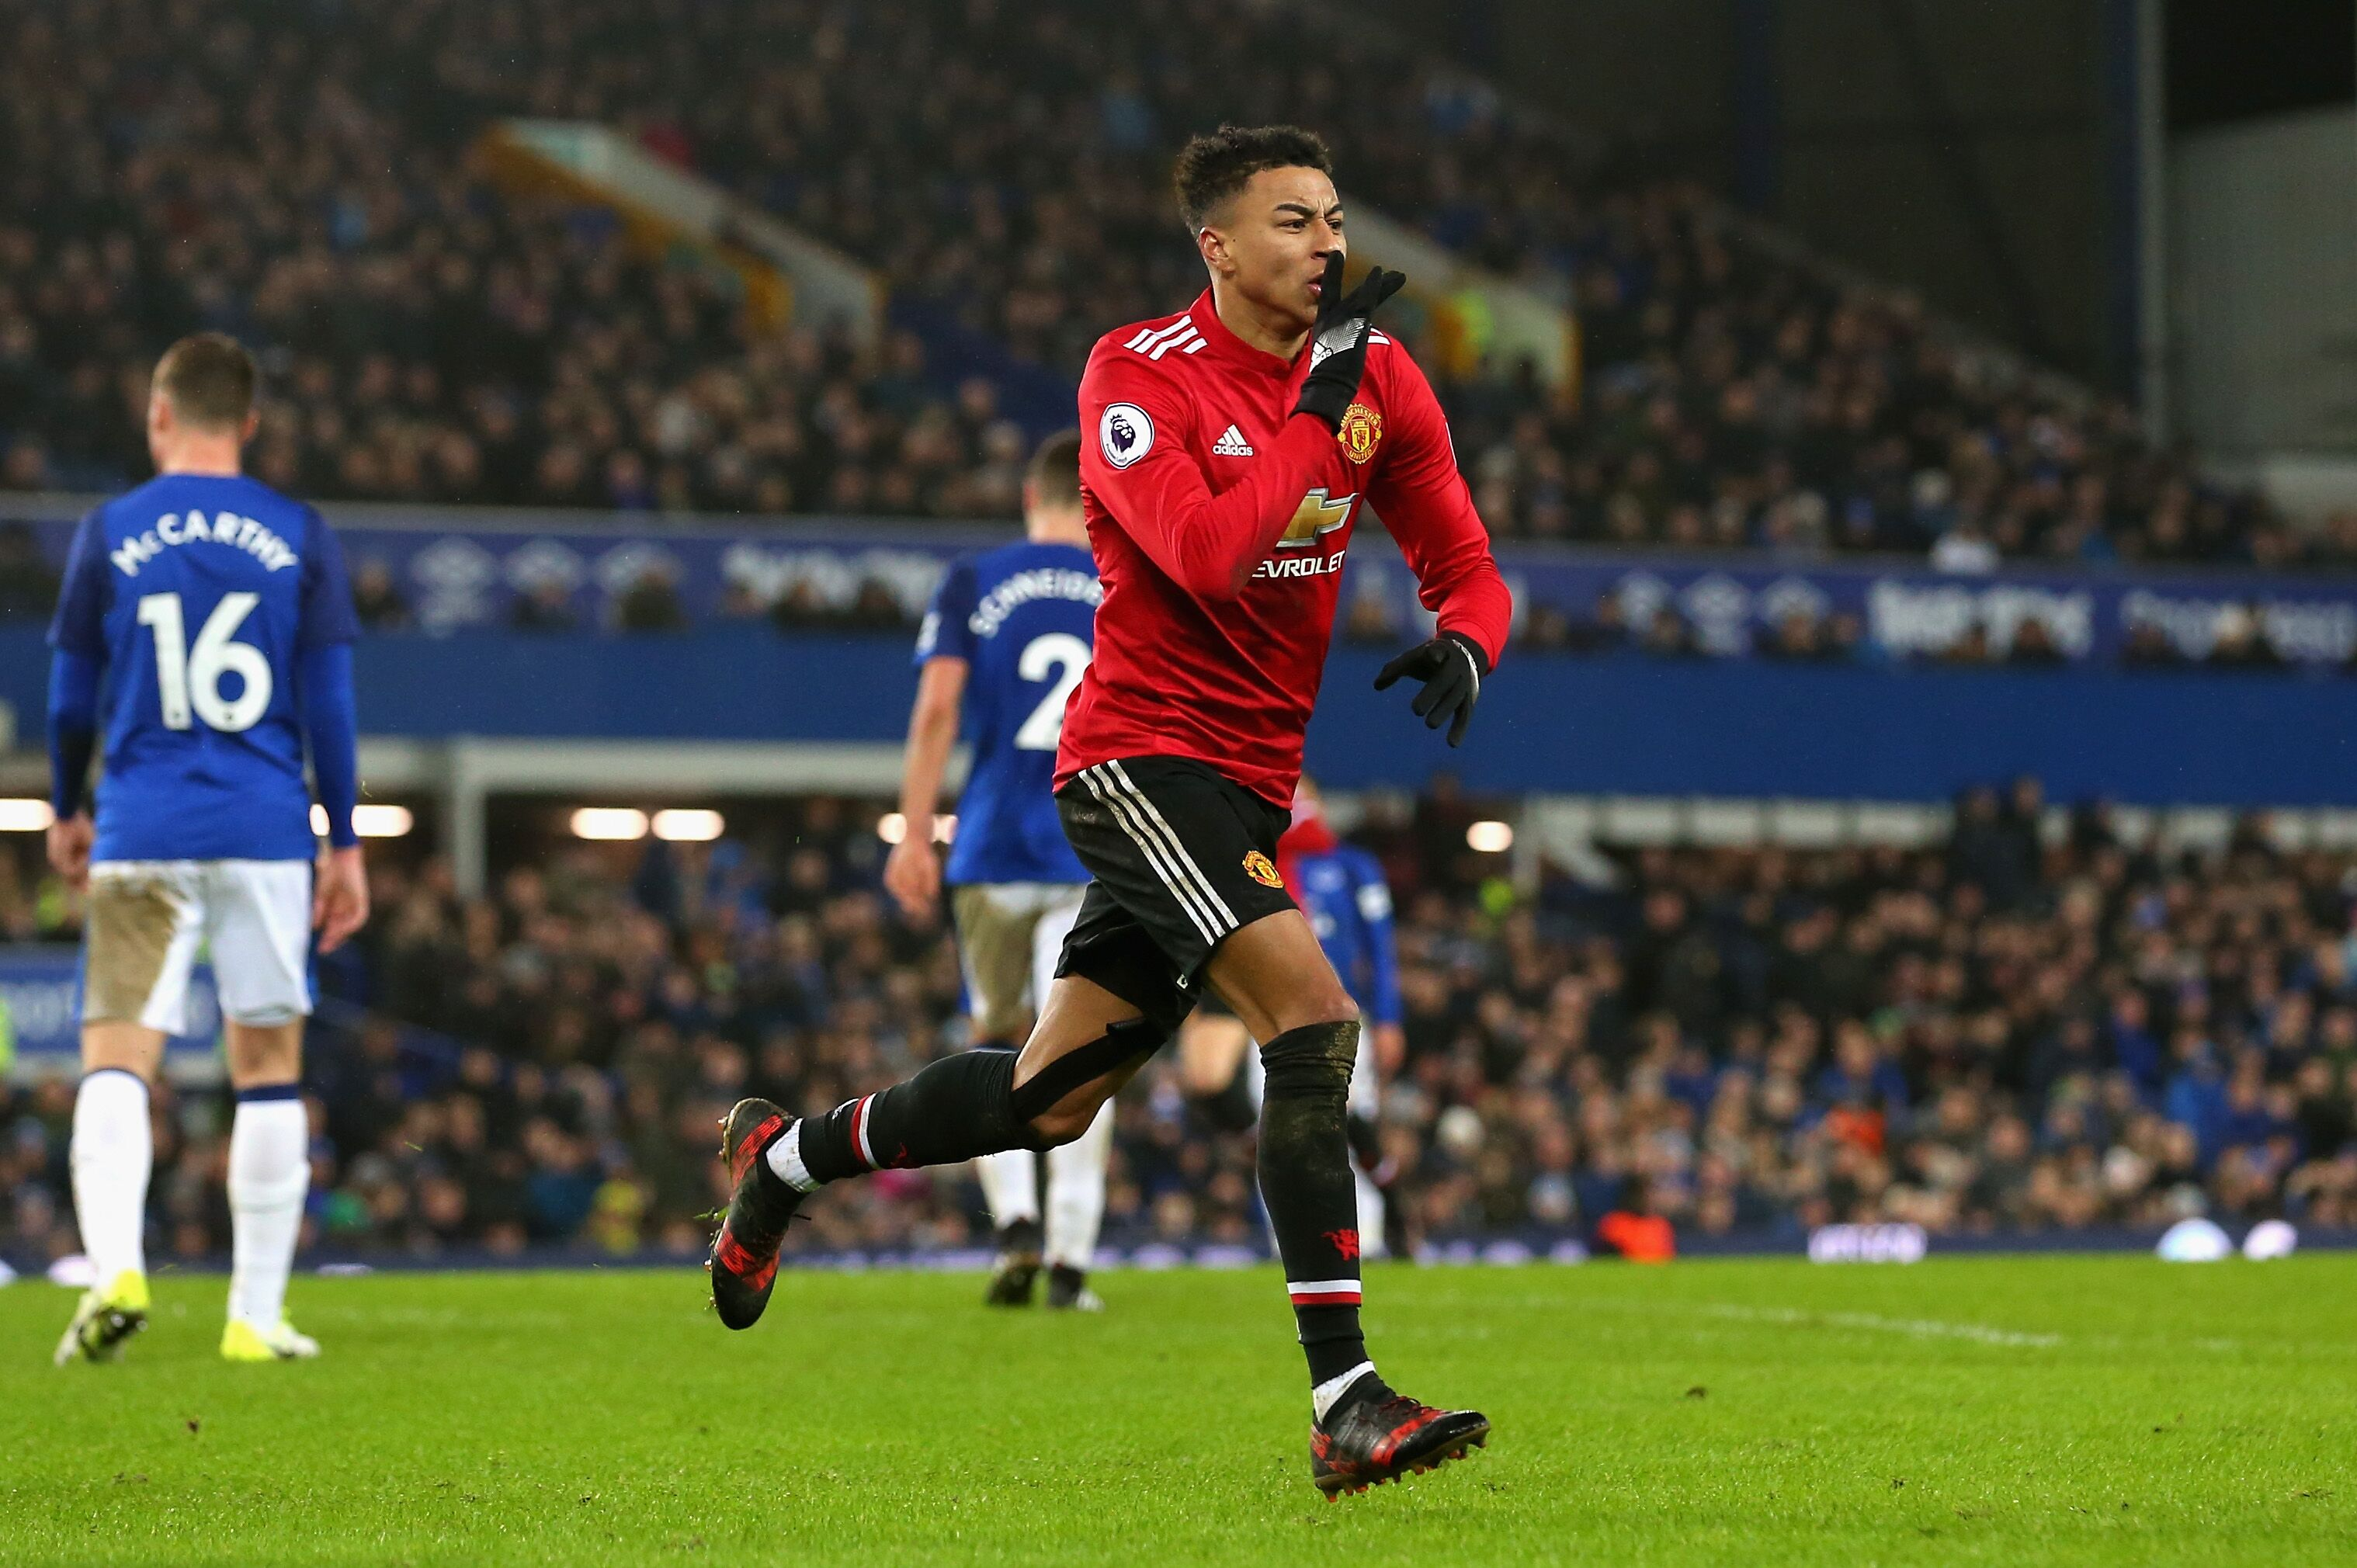 Manchester United: Jesse Lingard is the perfect number 10 for Jose Mourinho